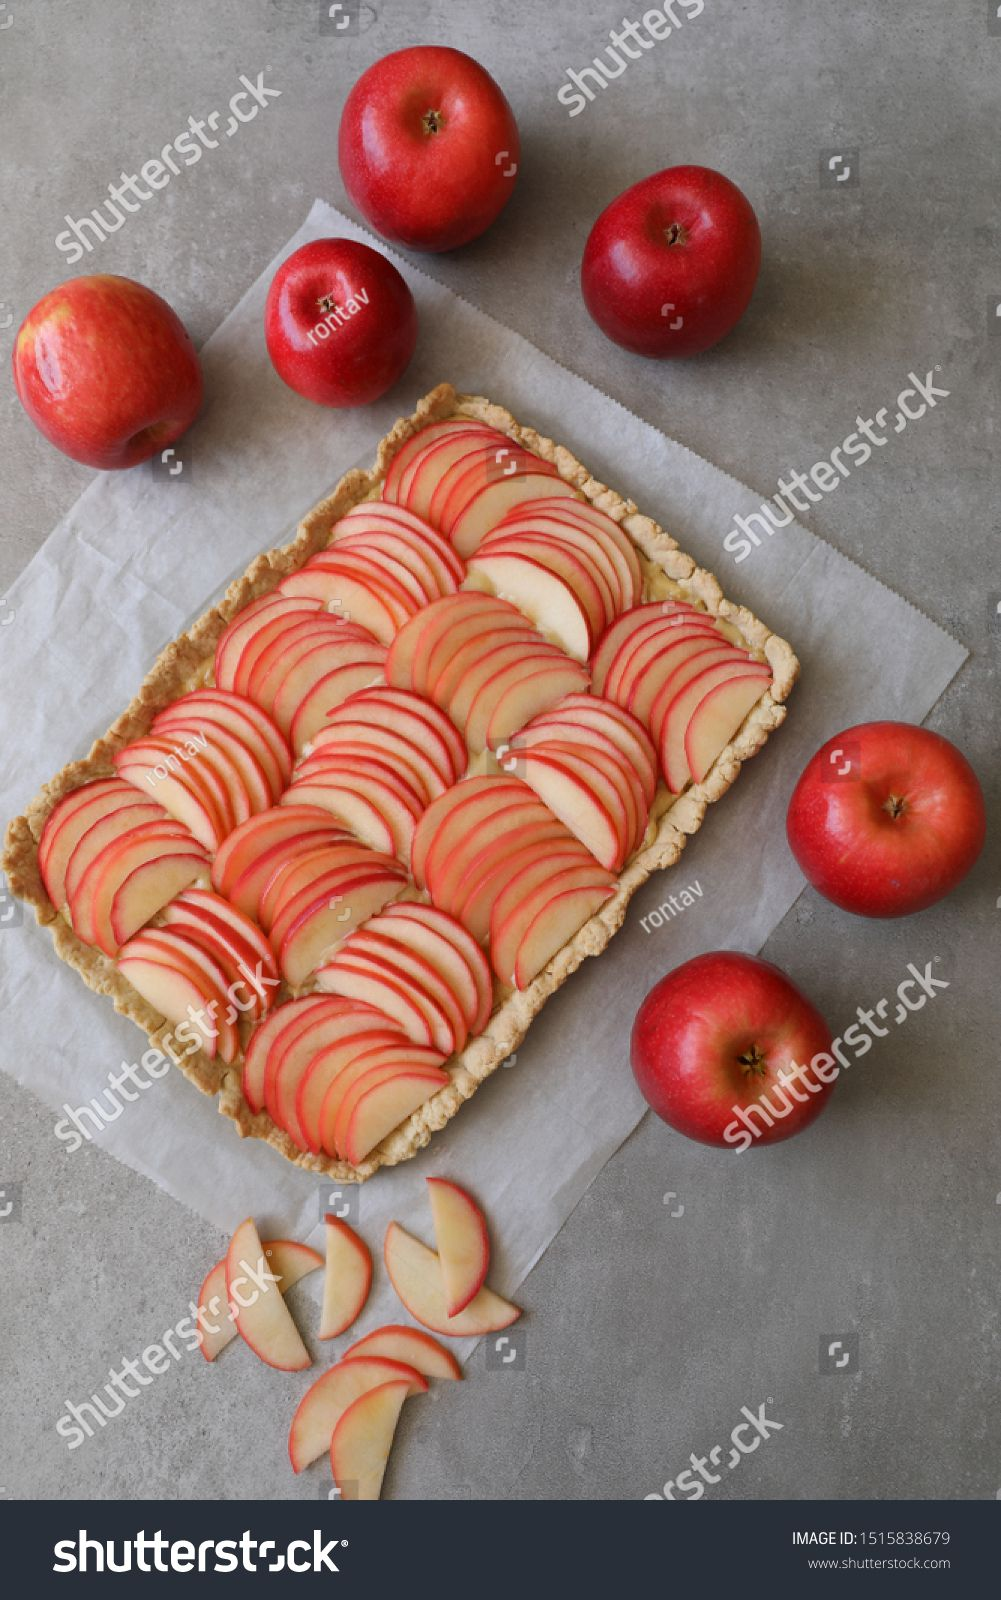 Beautiful Red Apple Lattice Tart On A White Baking Sheet And Light Grey Background With Fresh Ripe Red Apples Aside Apple Red Apple Apple Season Home Baking